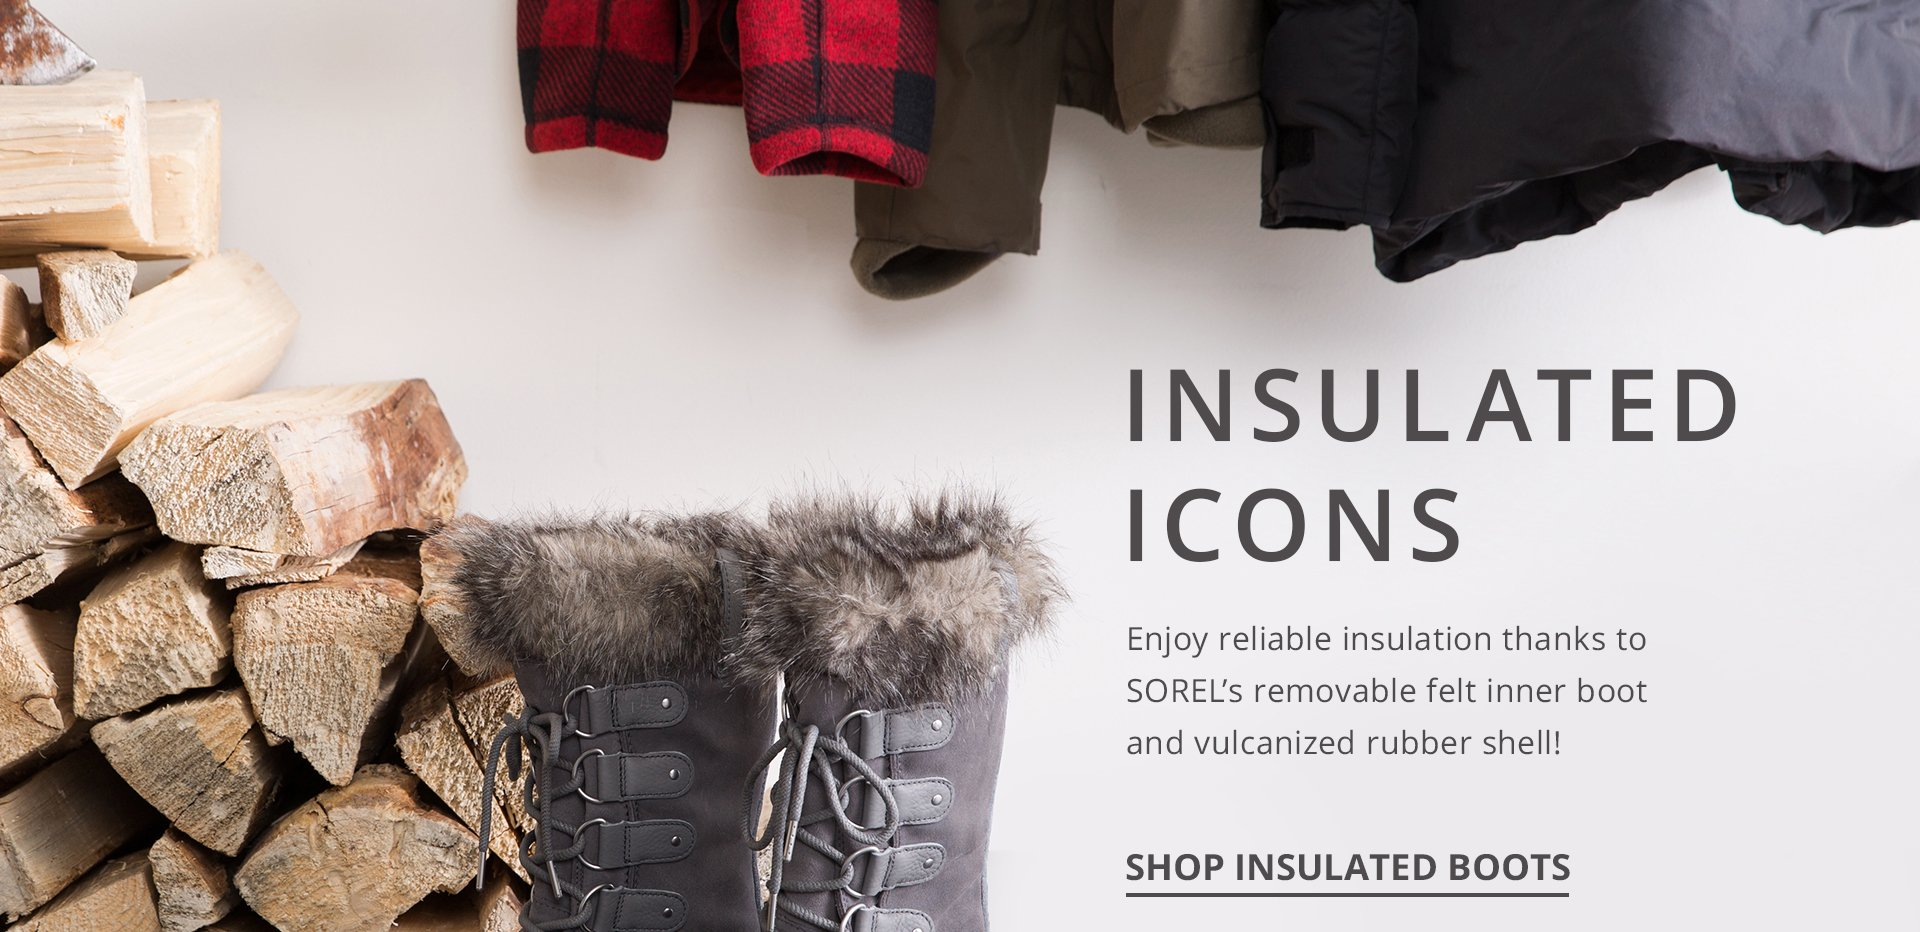 Insulated icons. Enjoy reliable insulation thanks to SOREL's removable felt inner boot and vulcanized runner shell.